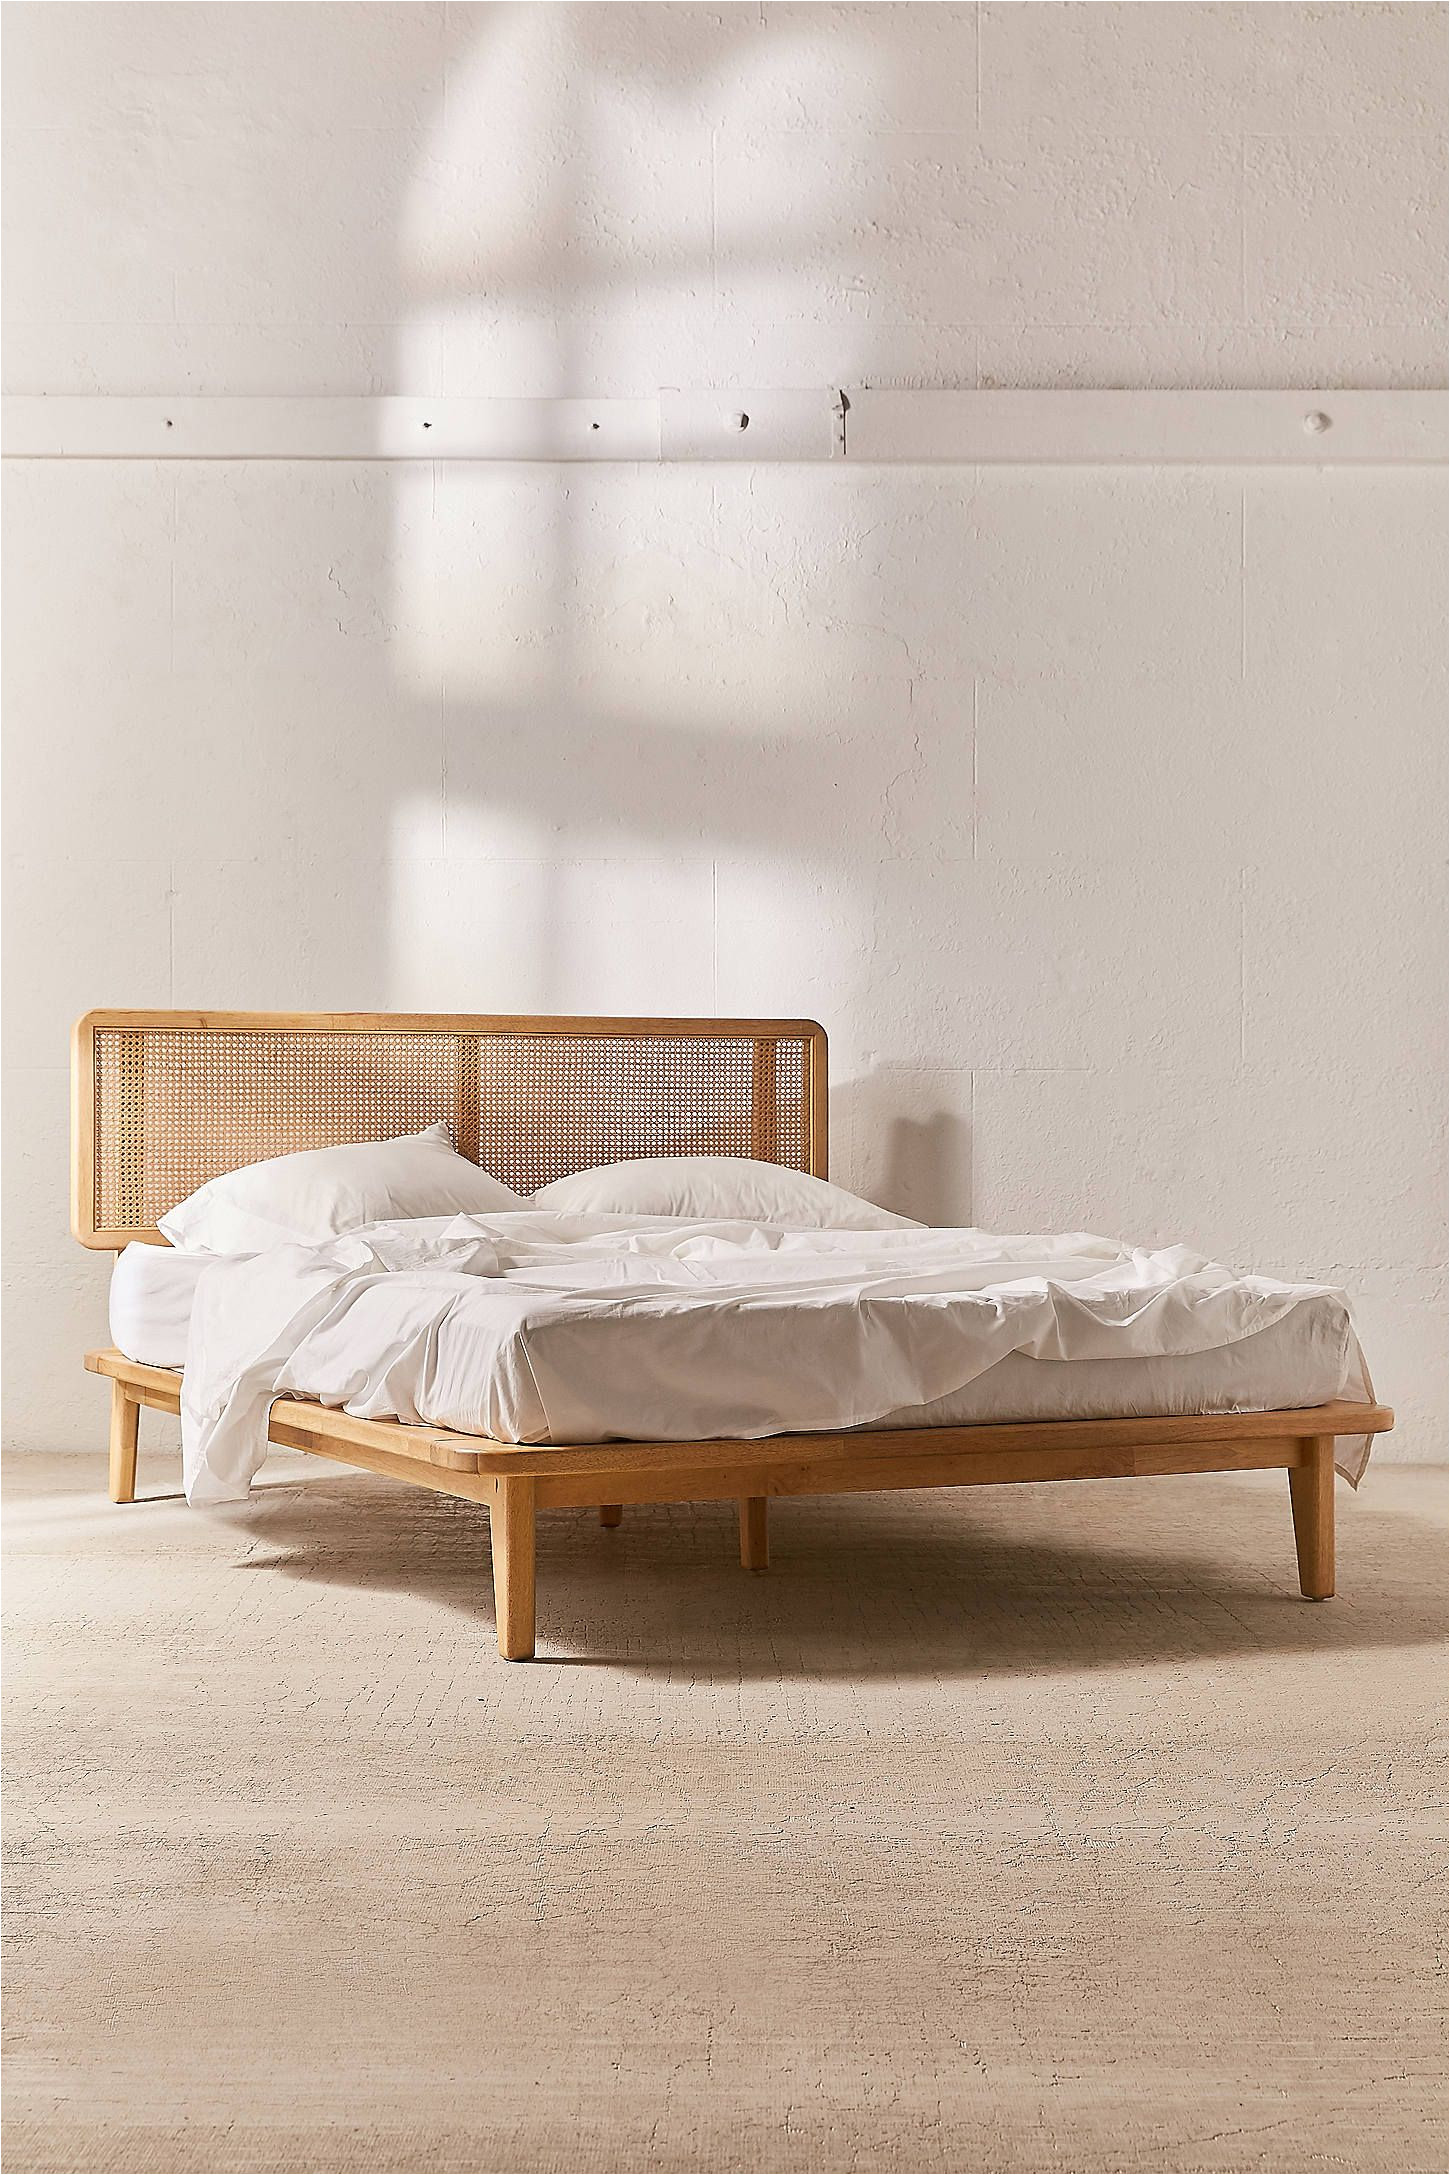 shop marte platform bed at urban outfitters today we carry all the latest styles colors and brands for you to choose from right here